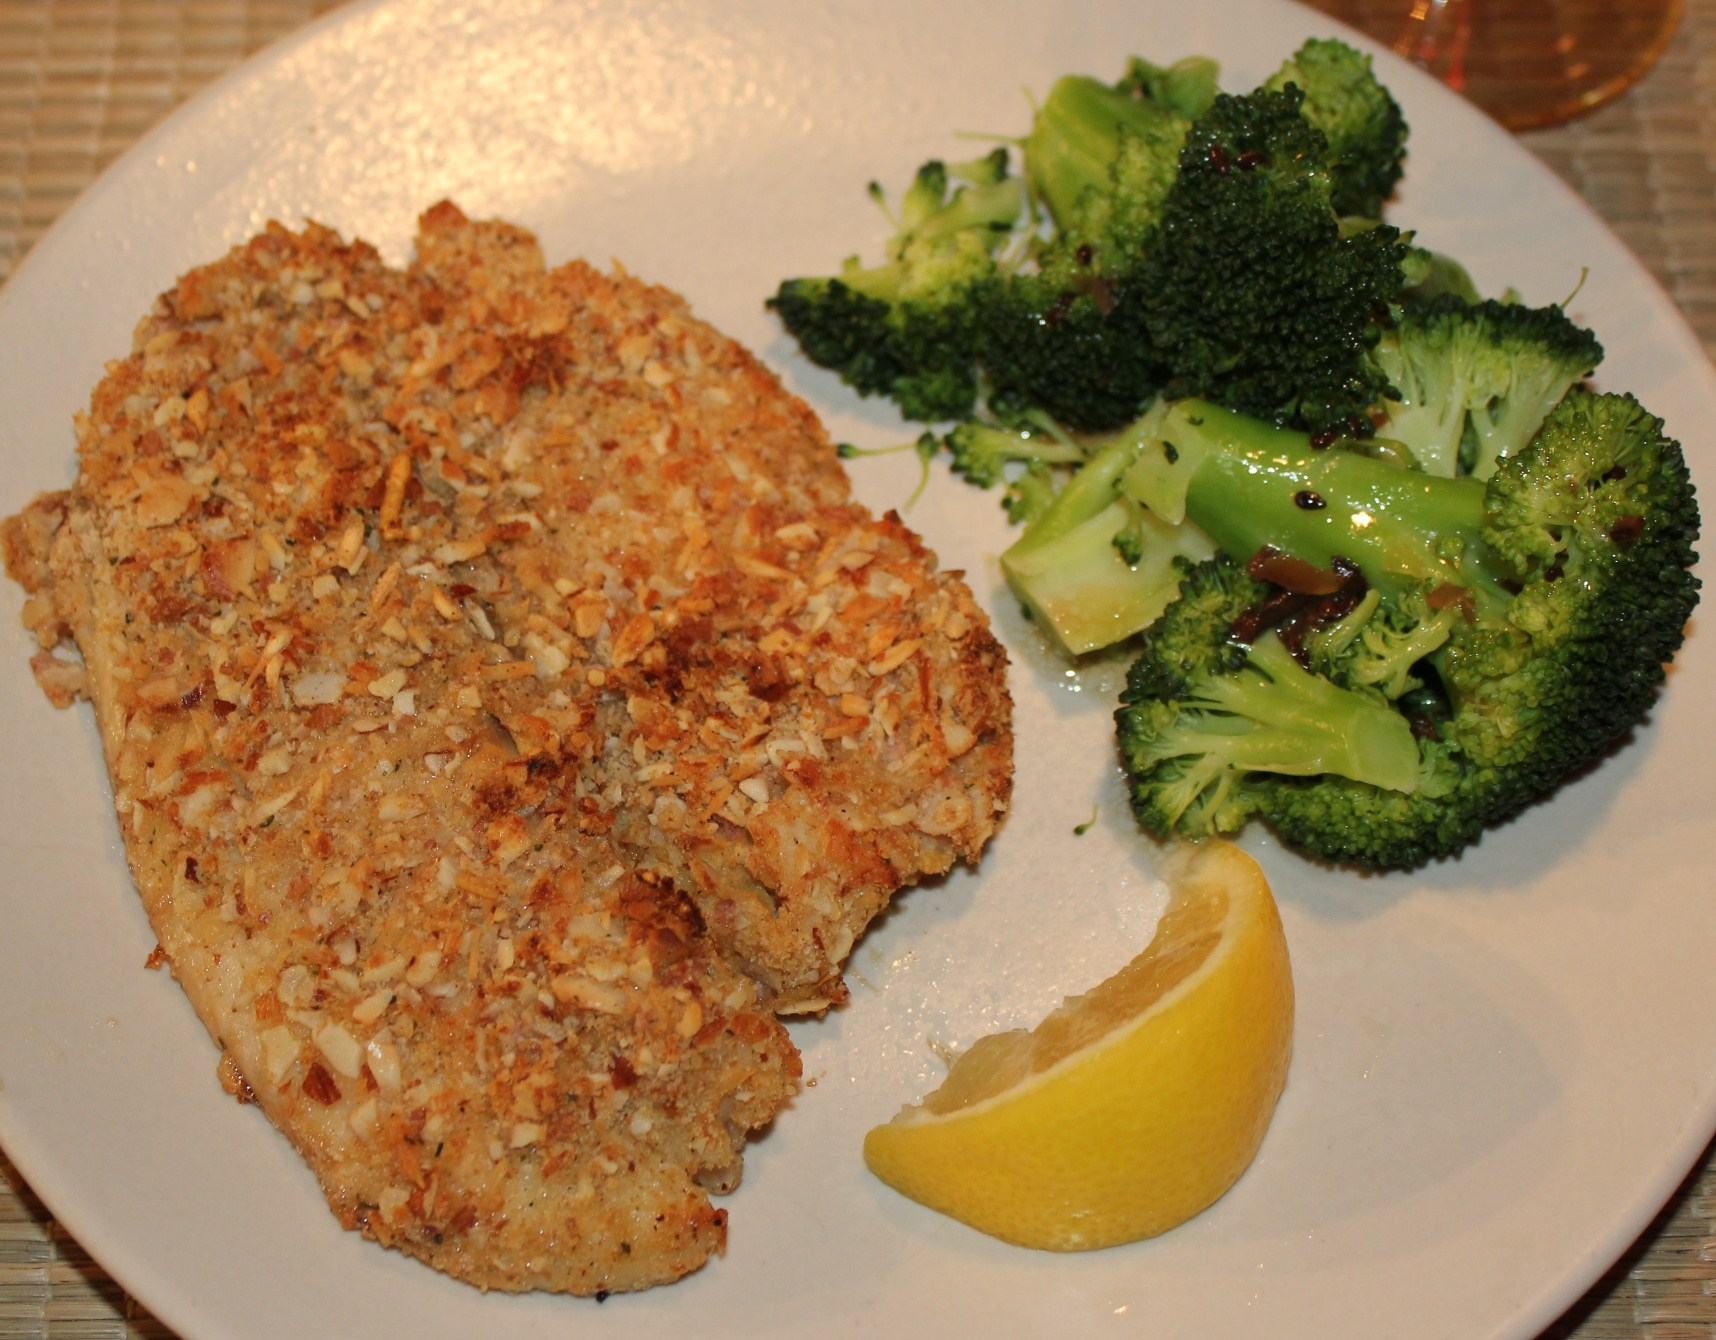 Almond parmesan encrusted tilapia recipe | Kel's Cafe of All Things ...